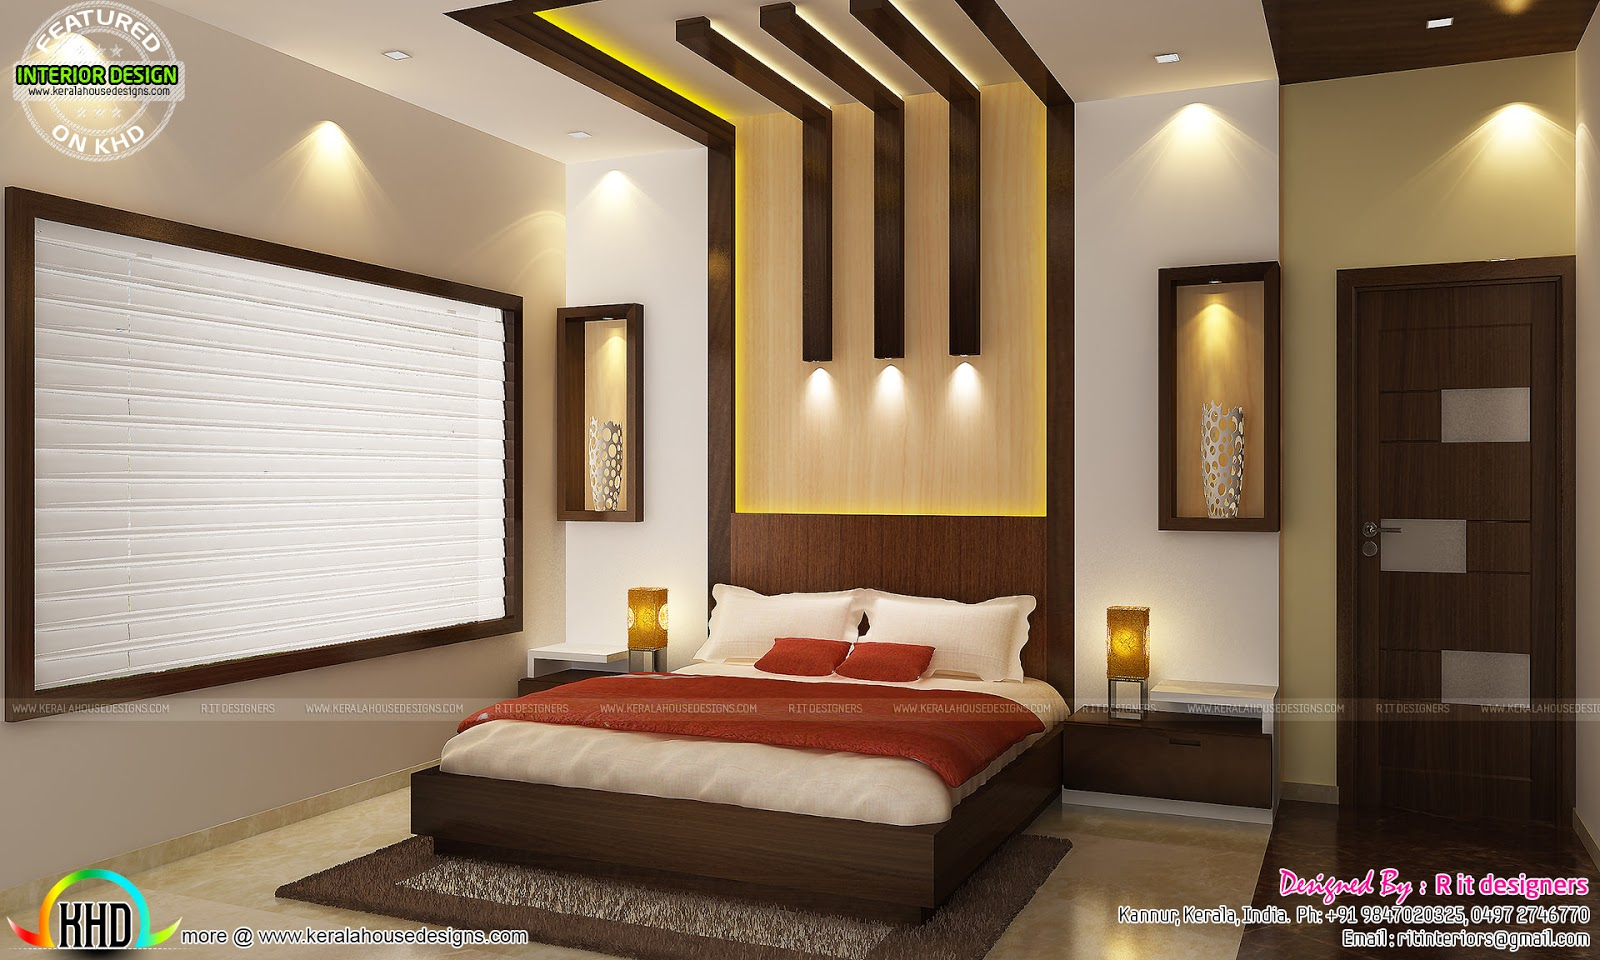 Kitchen living bedroom dining interior decor kerala for Interior design ideas for bedroom